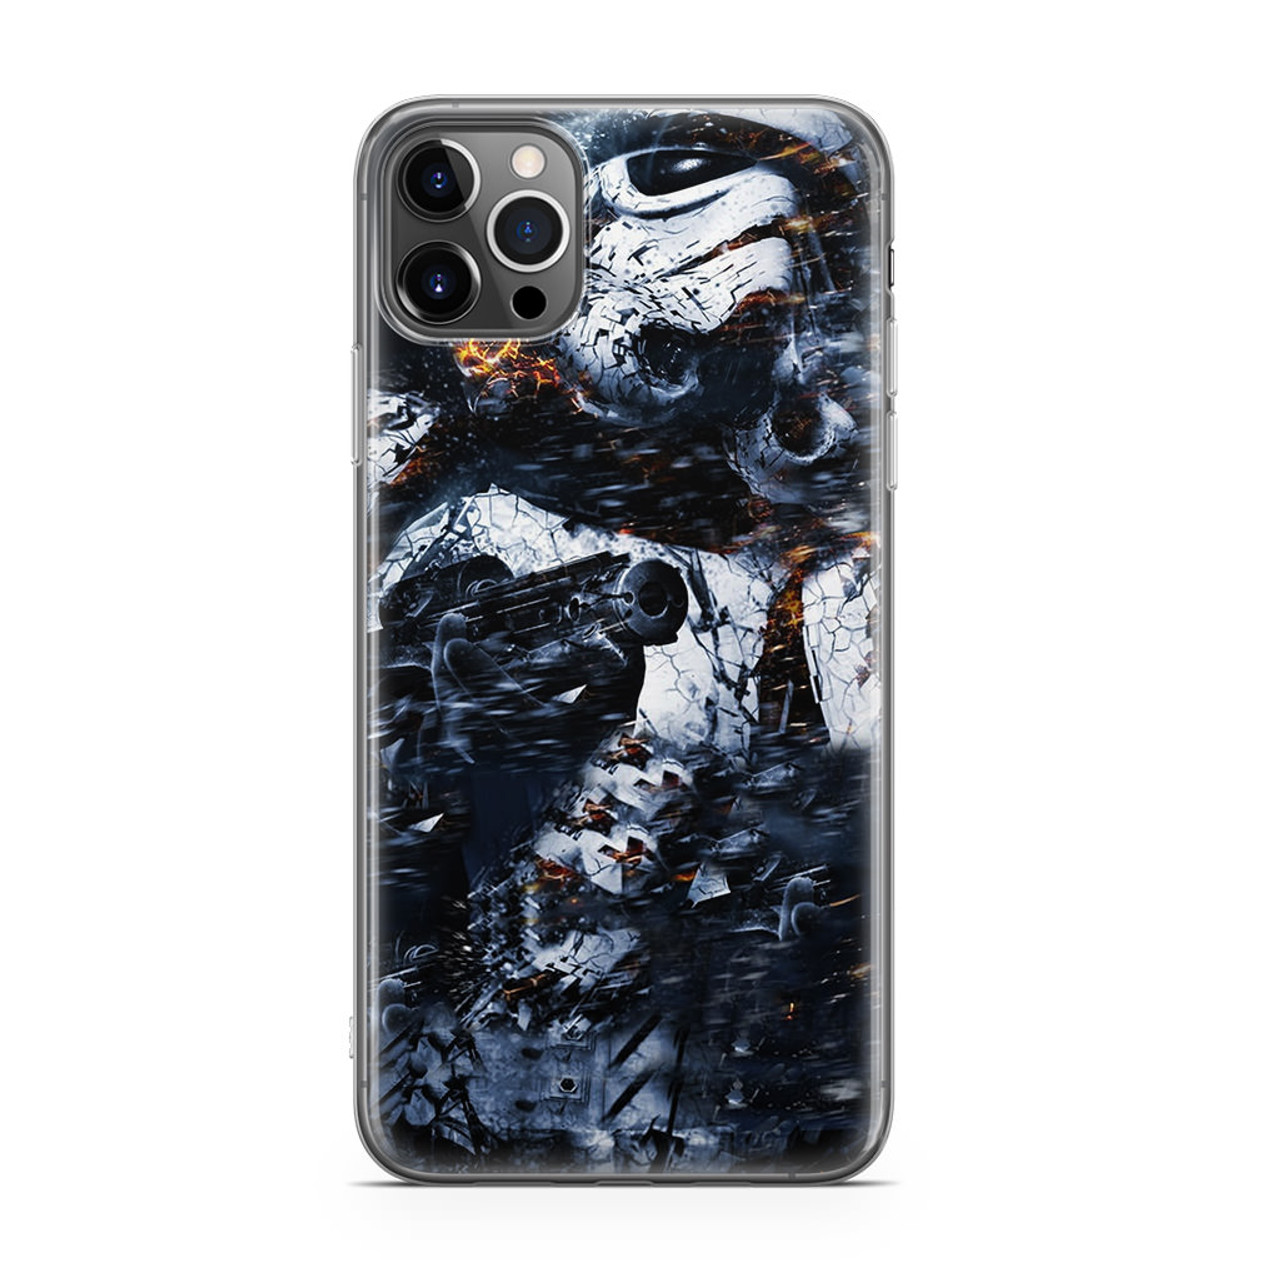 Star Wars Stormtroopers iPhone 12 Pro Max Case